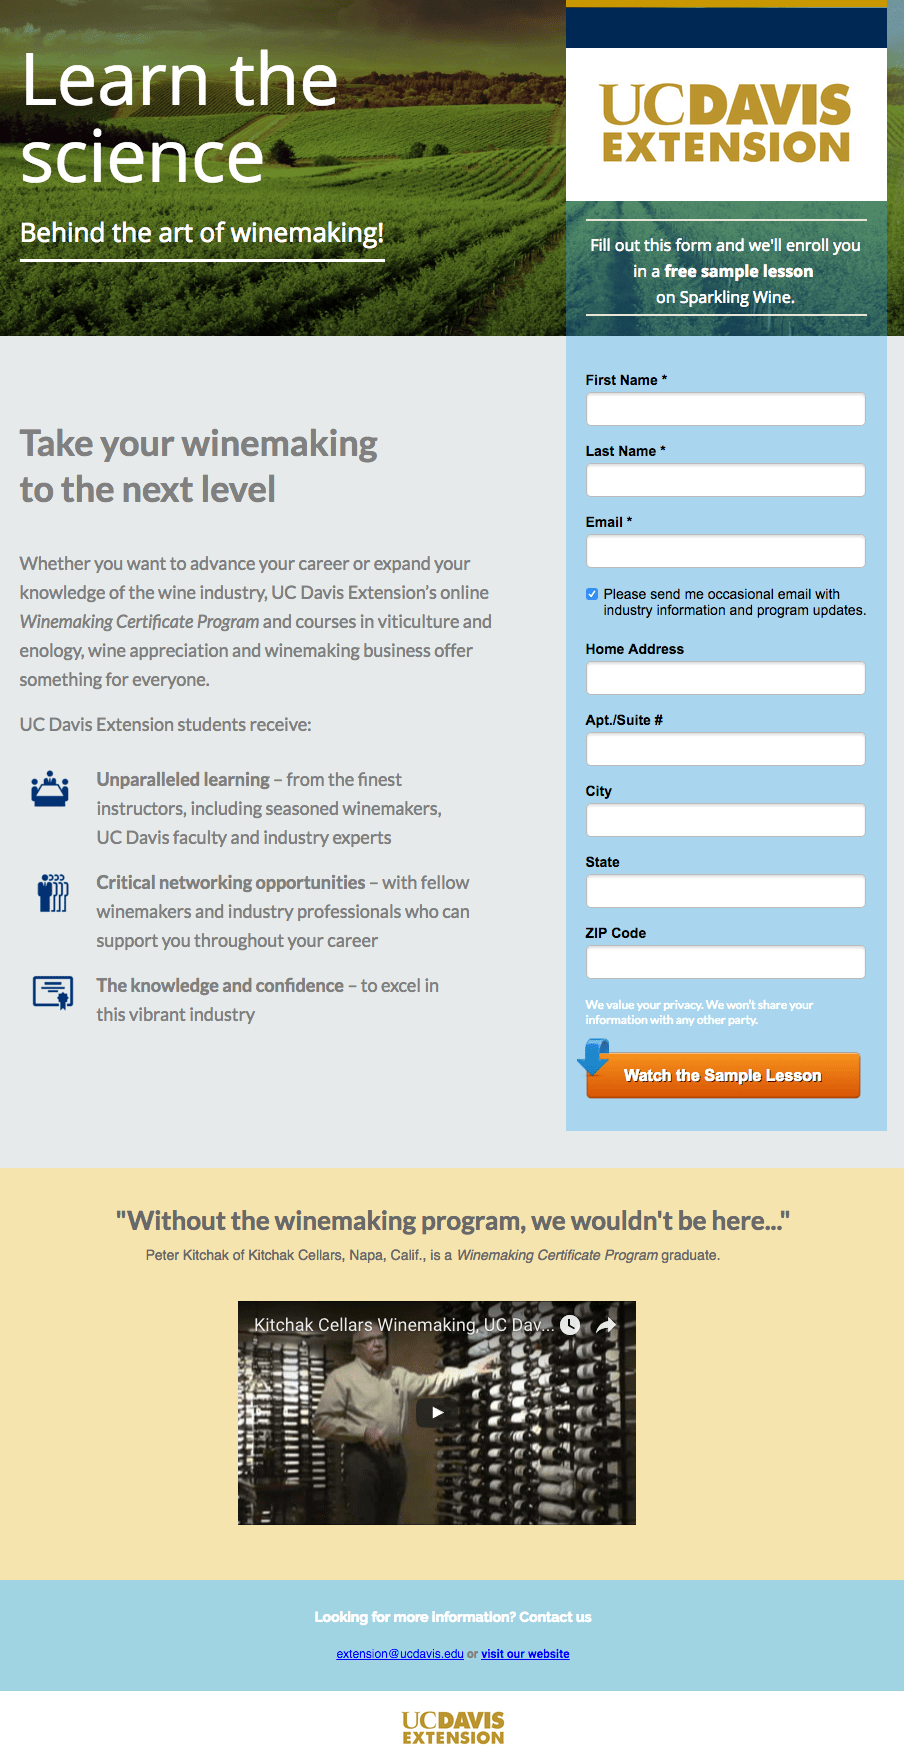 uc-davis-art-of-winemaking-landing-page-example.png